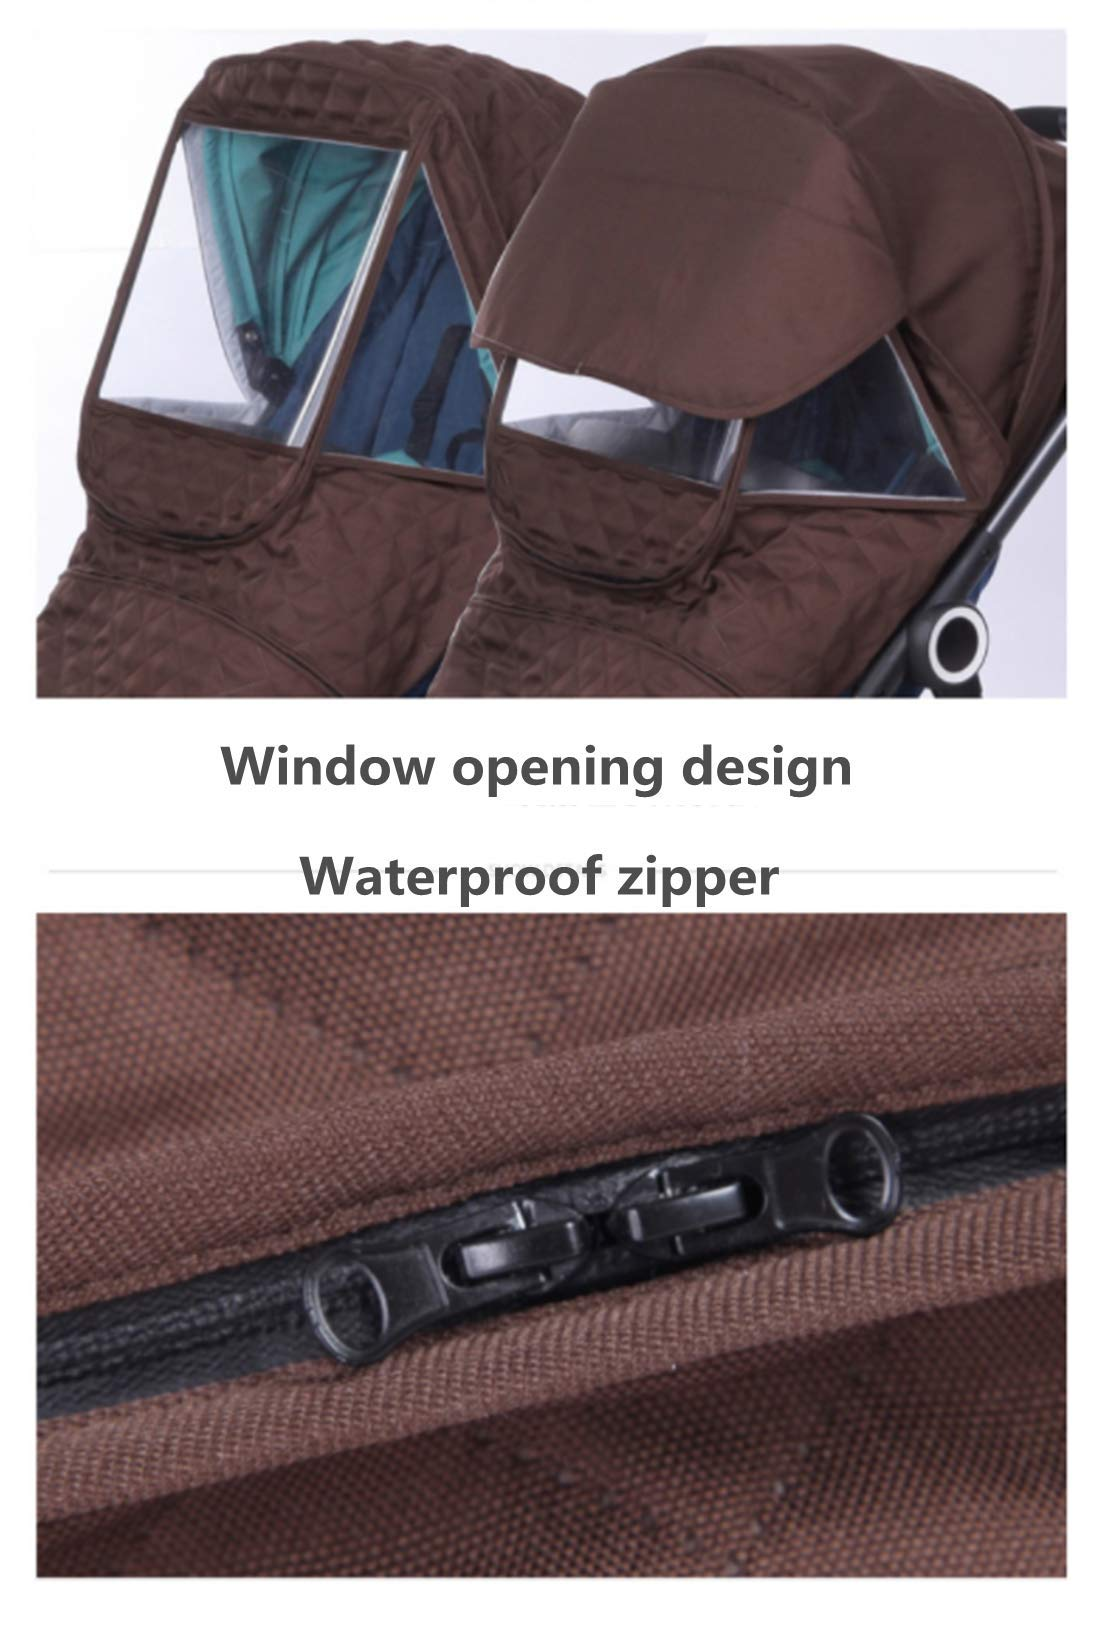 Universal Stroller rain Cover Baby Stroller Windshield rain Cover, Snow Cover, Warm Winter Sunshade Waterproof Cover (Brown Color) by Anglebay (Image #5)